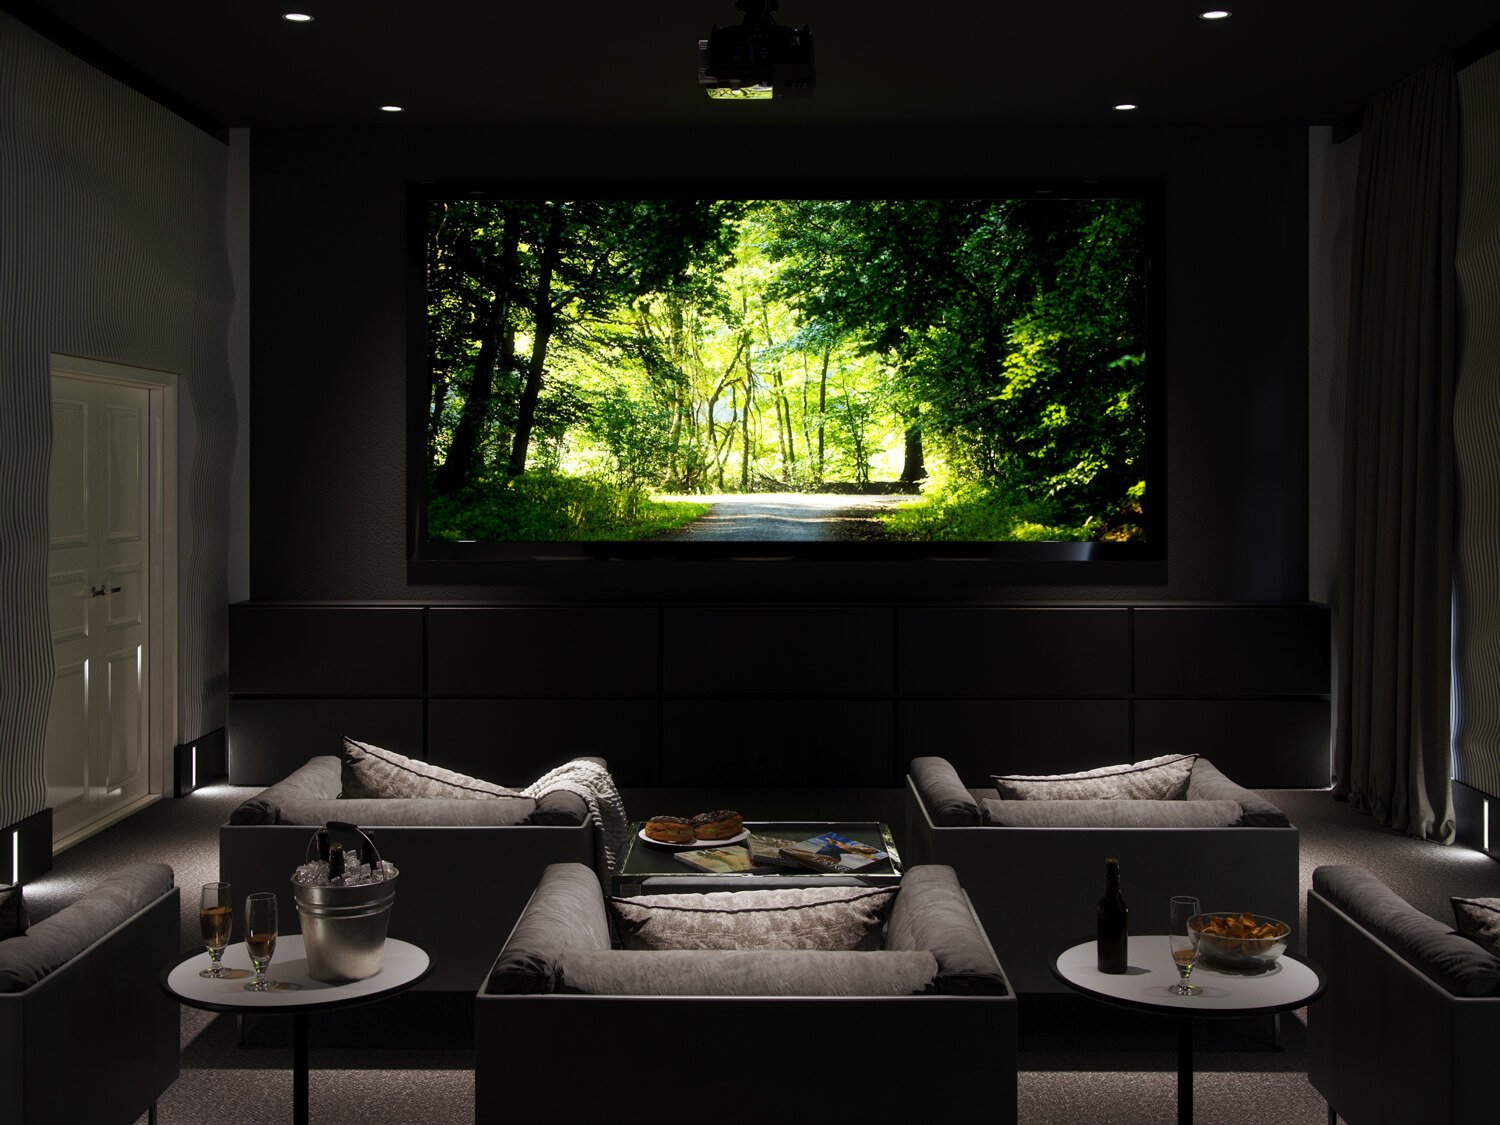 Urban CGI of Derwent Street high rise development, featuring a state of the art private cinema with comfortable armchairs, individual side tables, and large central screen.